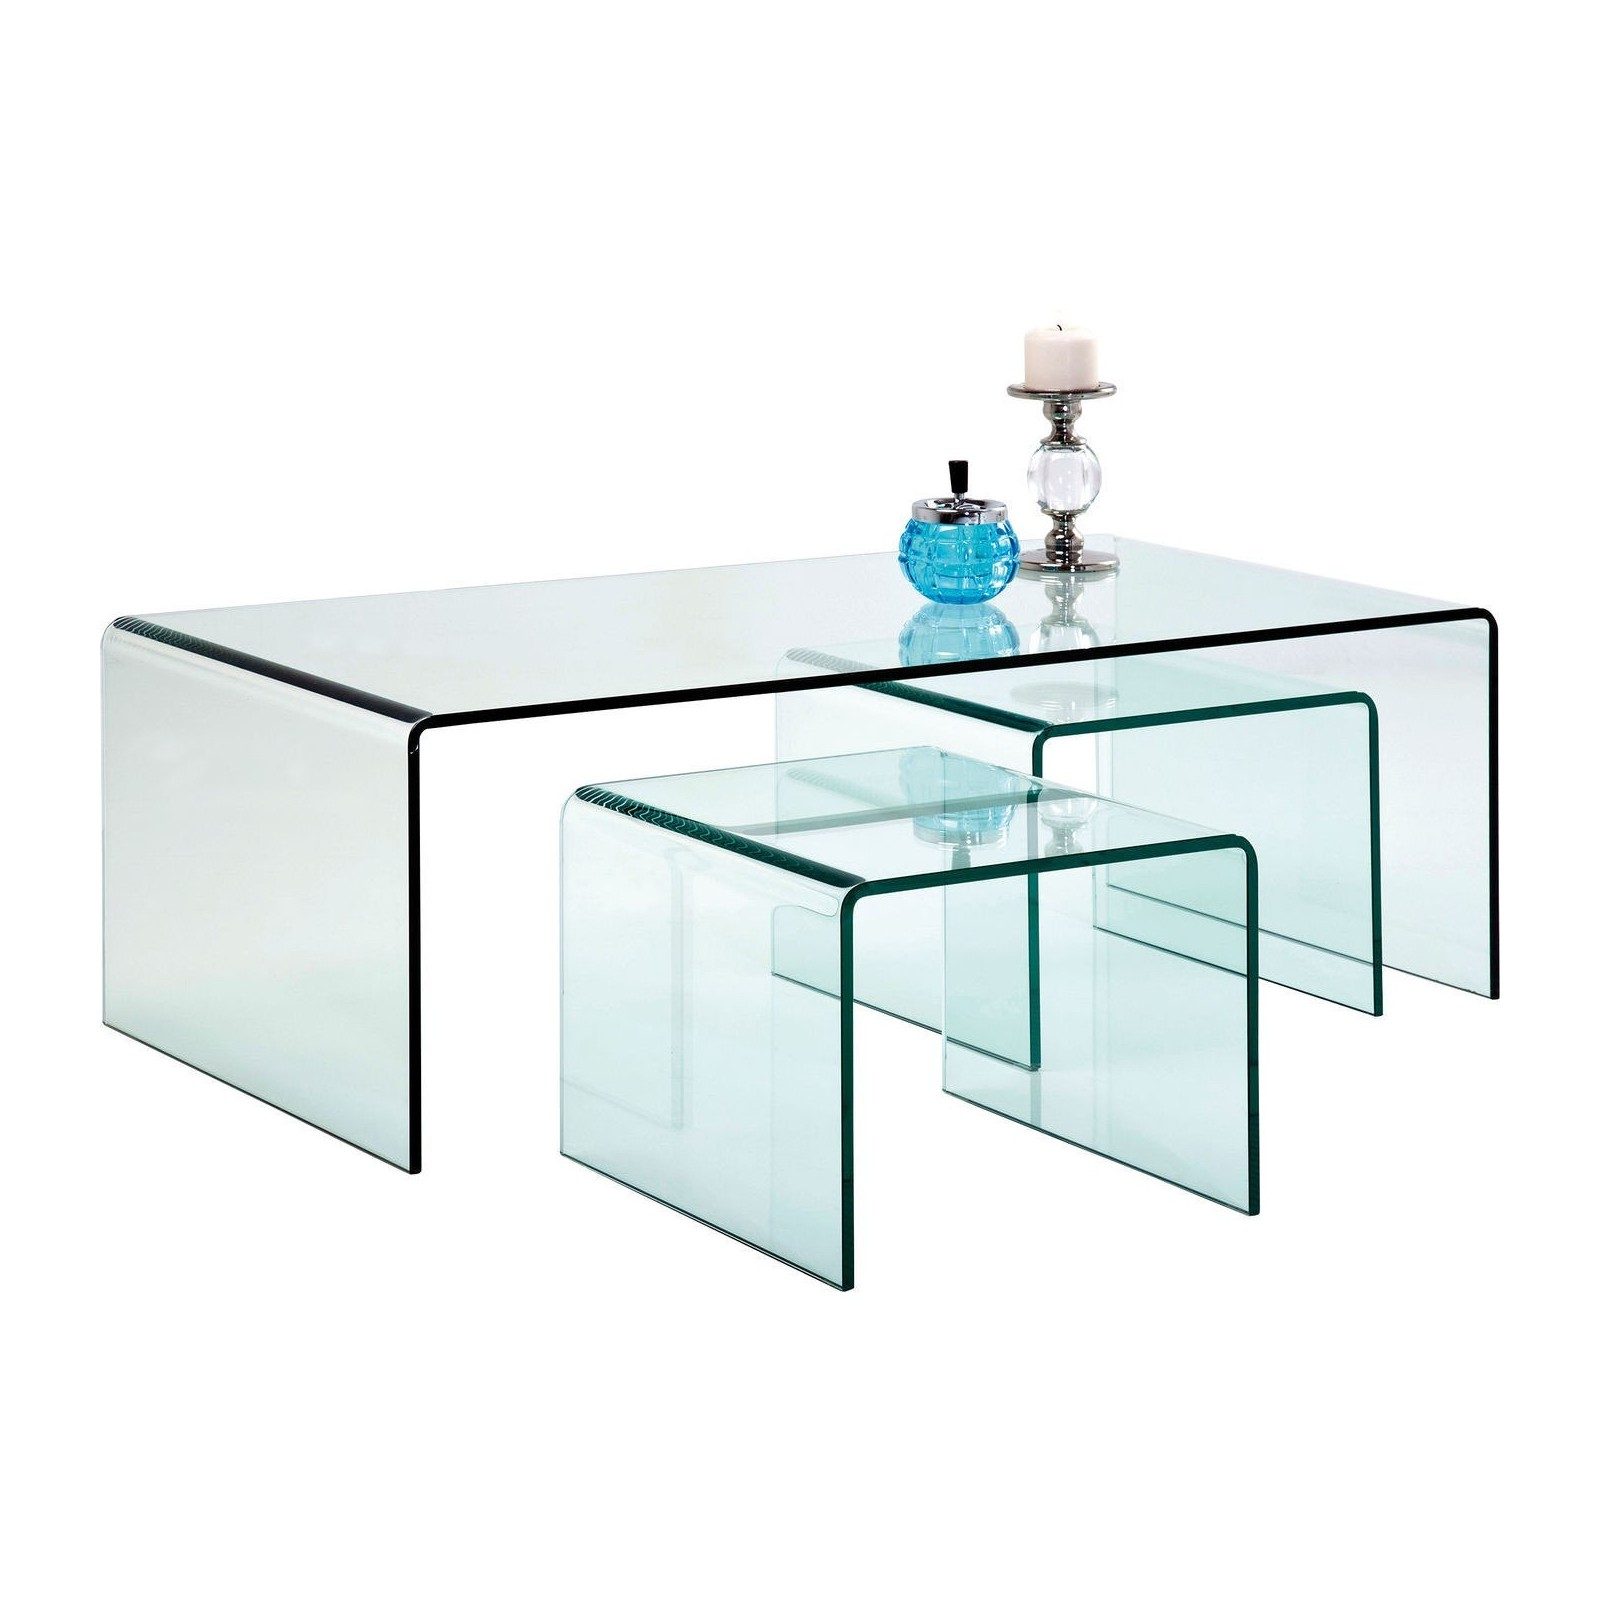 Table Basse Contemporaine En Verre Clear Club Kare Design # Table Basse Transparente